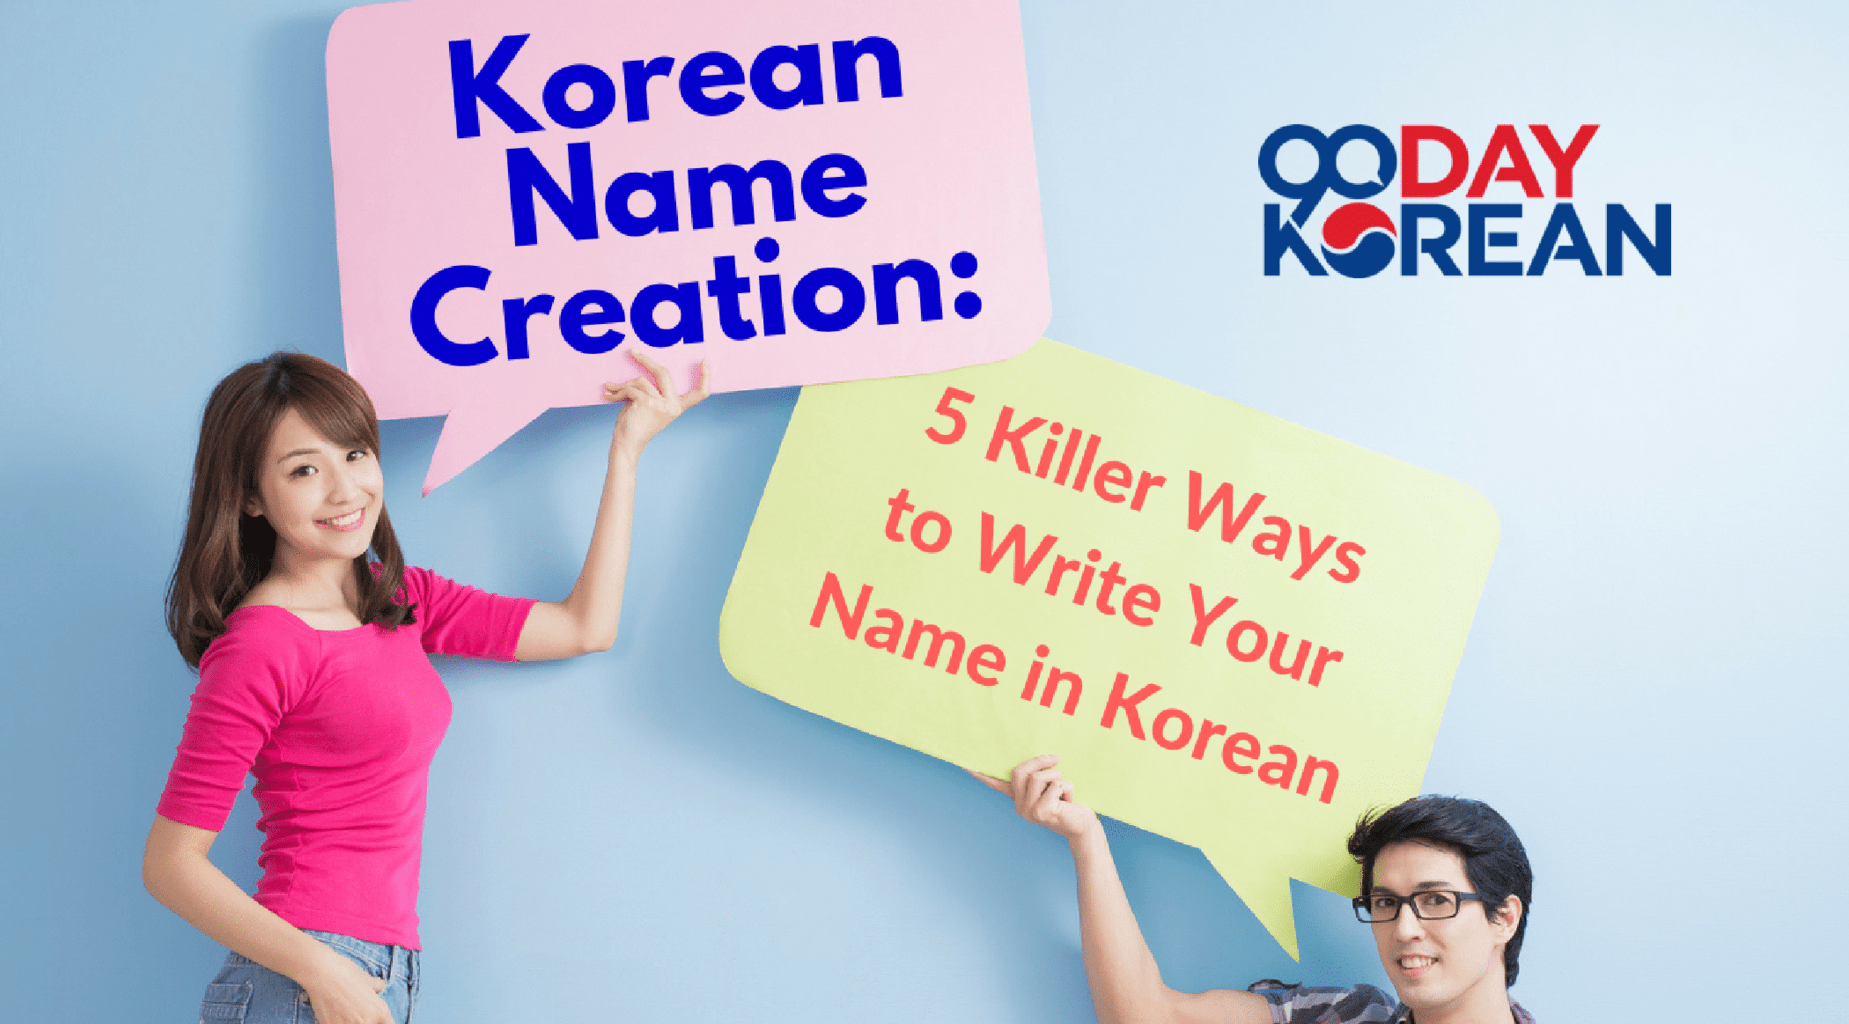 Korean Name Creation- 5 Killer Ways to Write Your Name in Korean